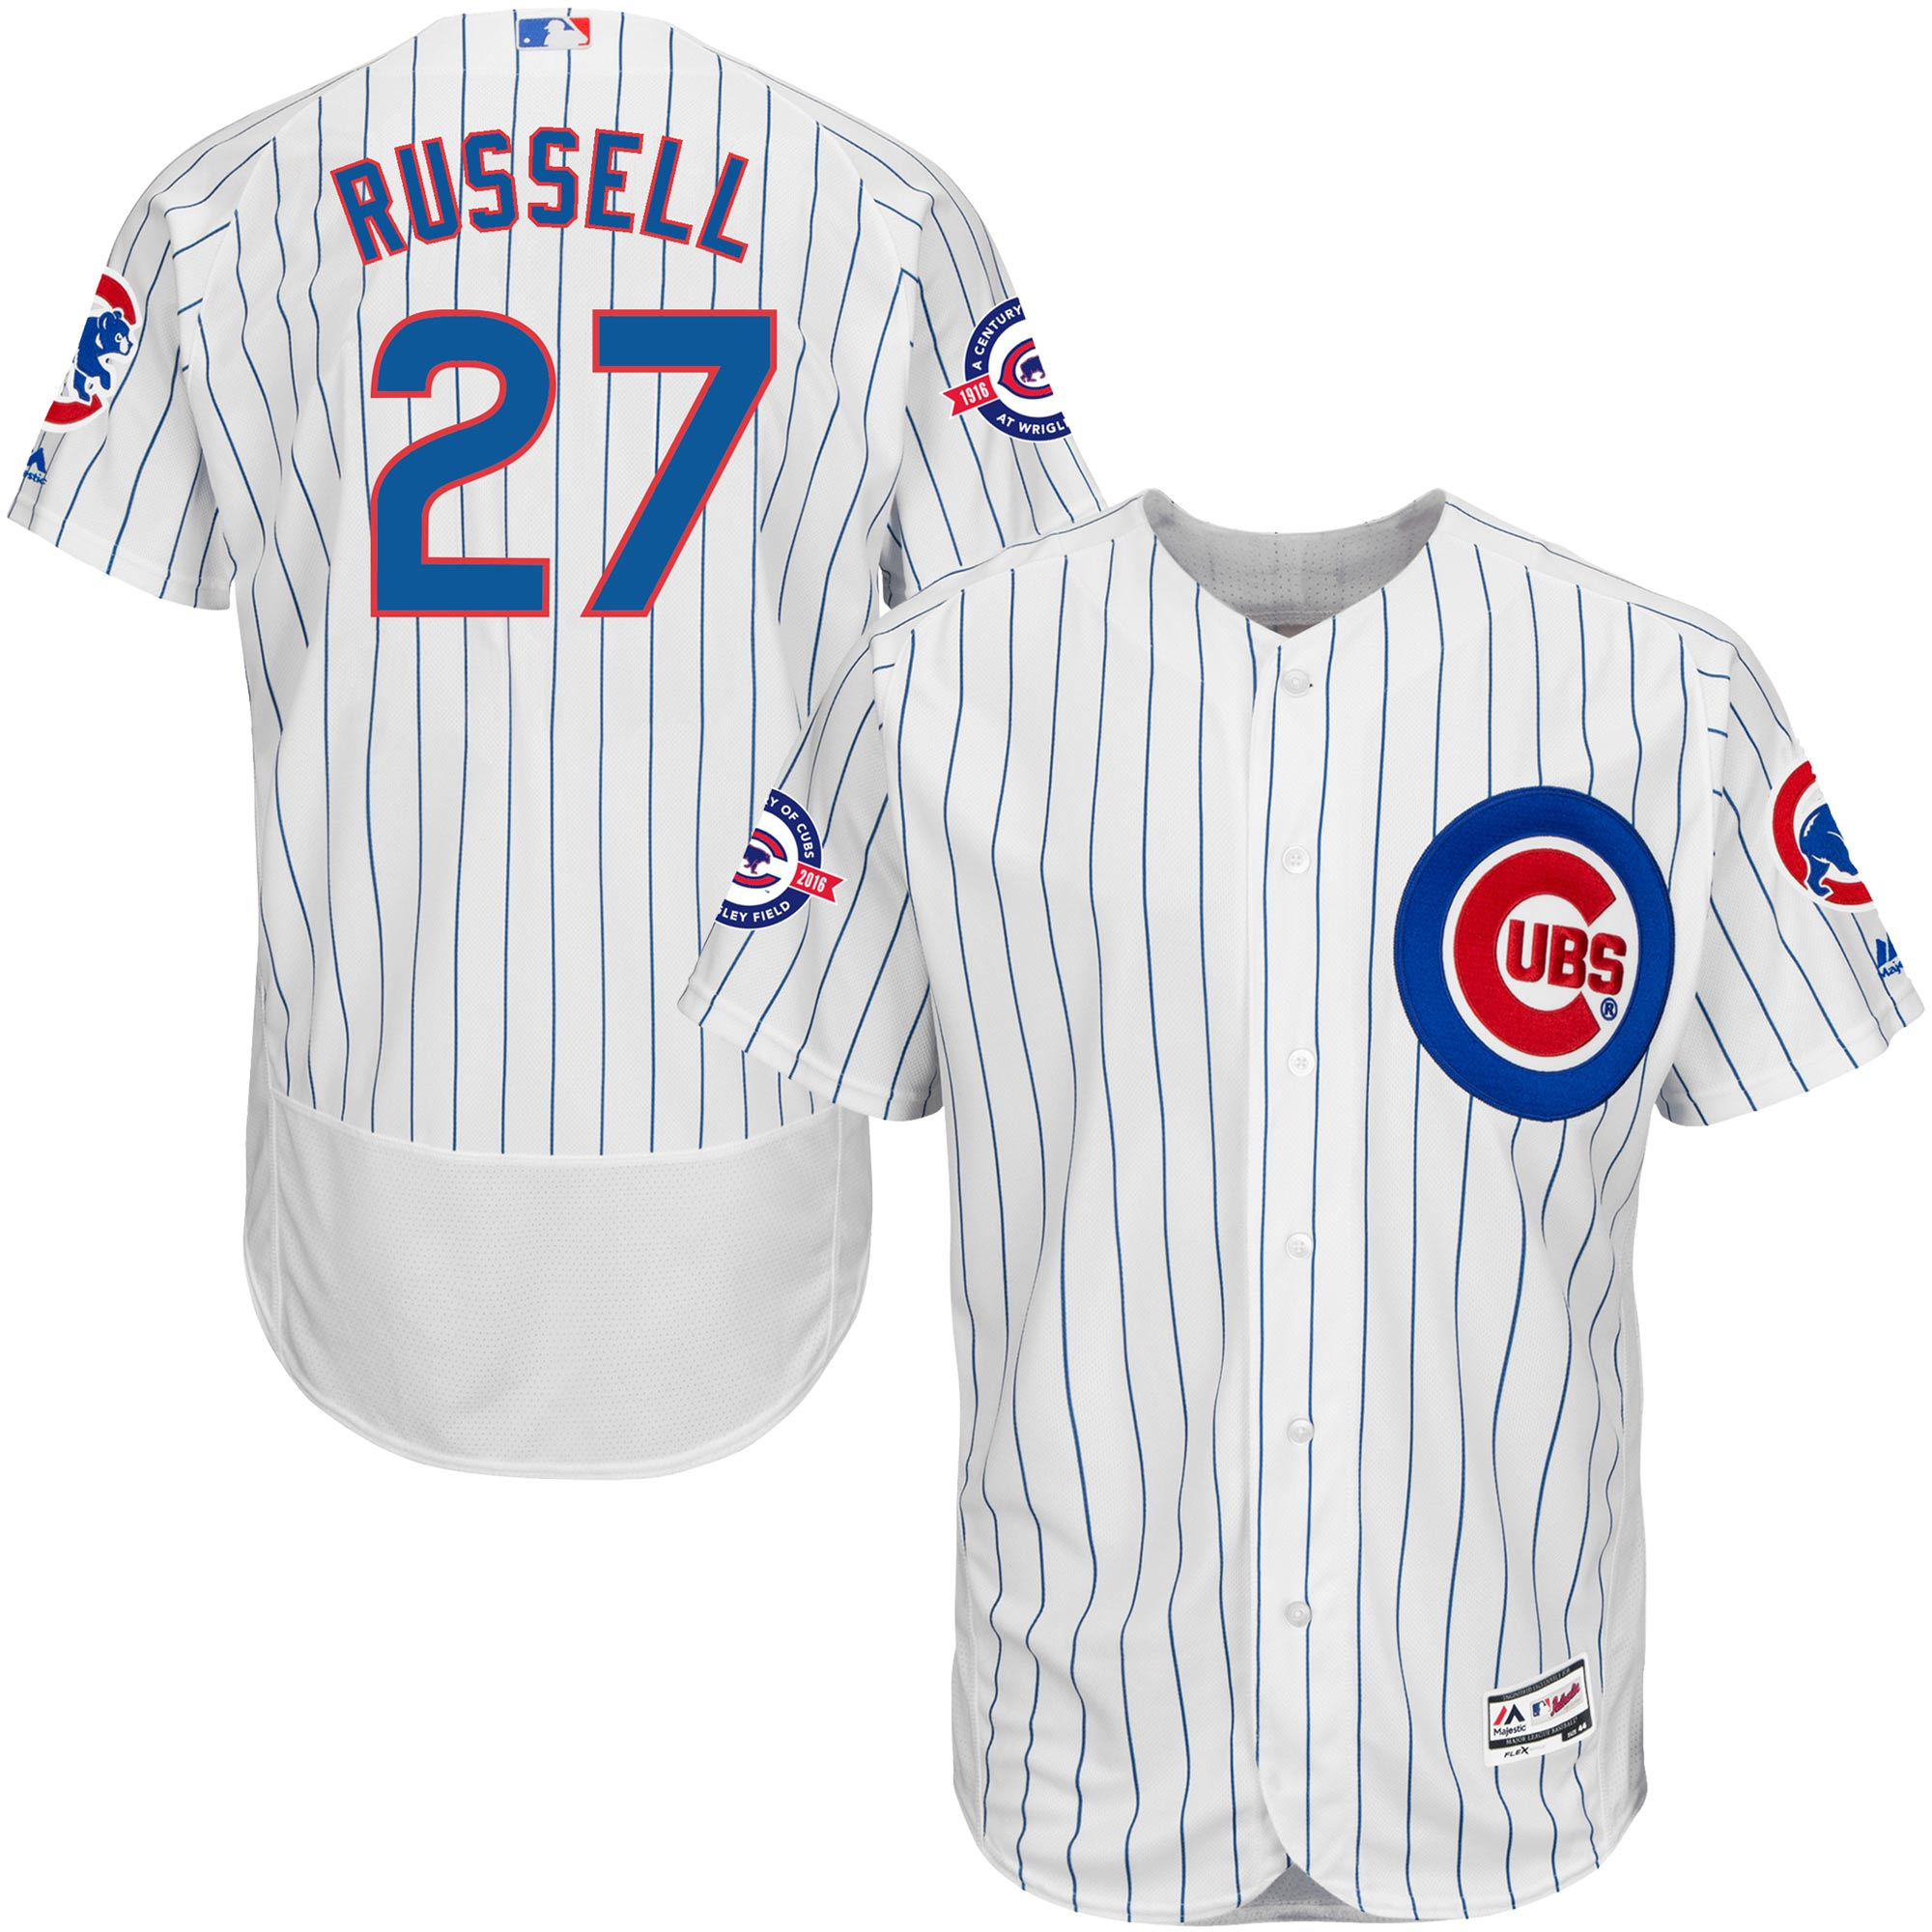 Addison Russell Chicago Cubs Majestic Home Flex Base Authentic Collection Jersey with 100 Years at Wrigley Field Commemorative Patch - White/Royal